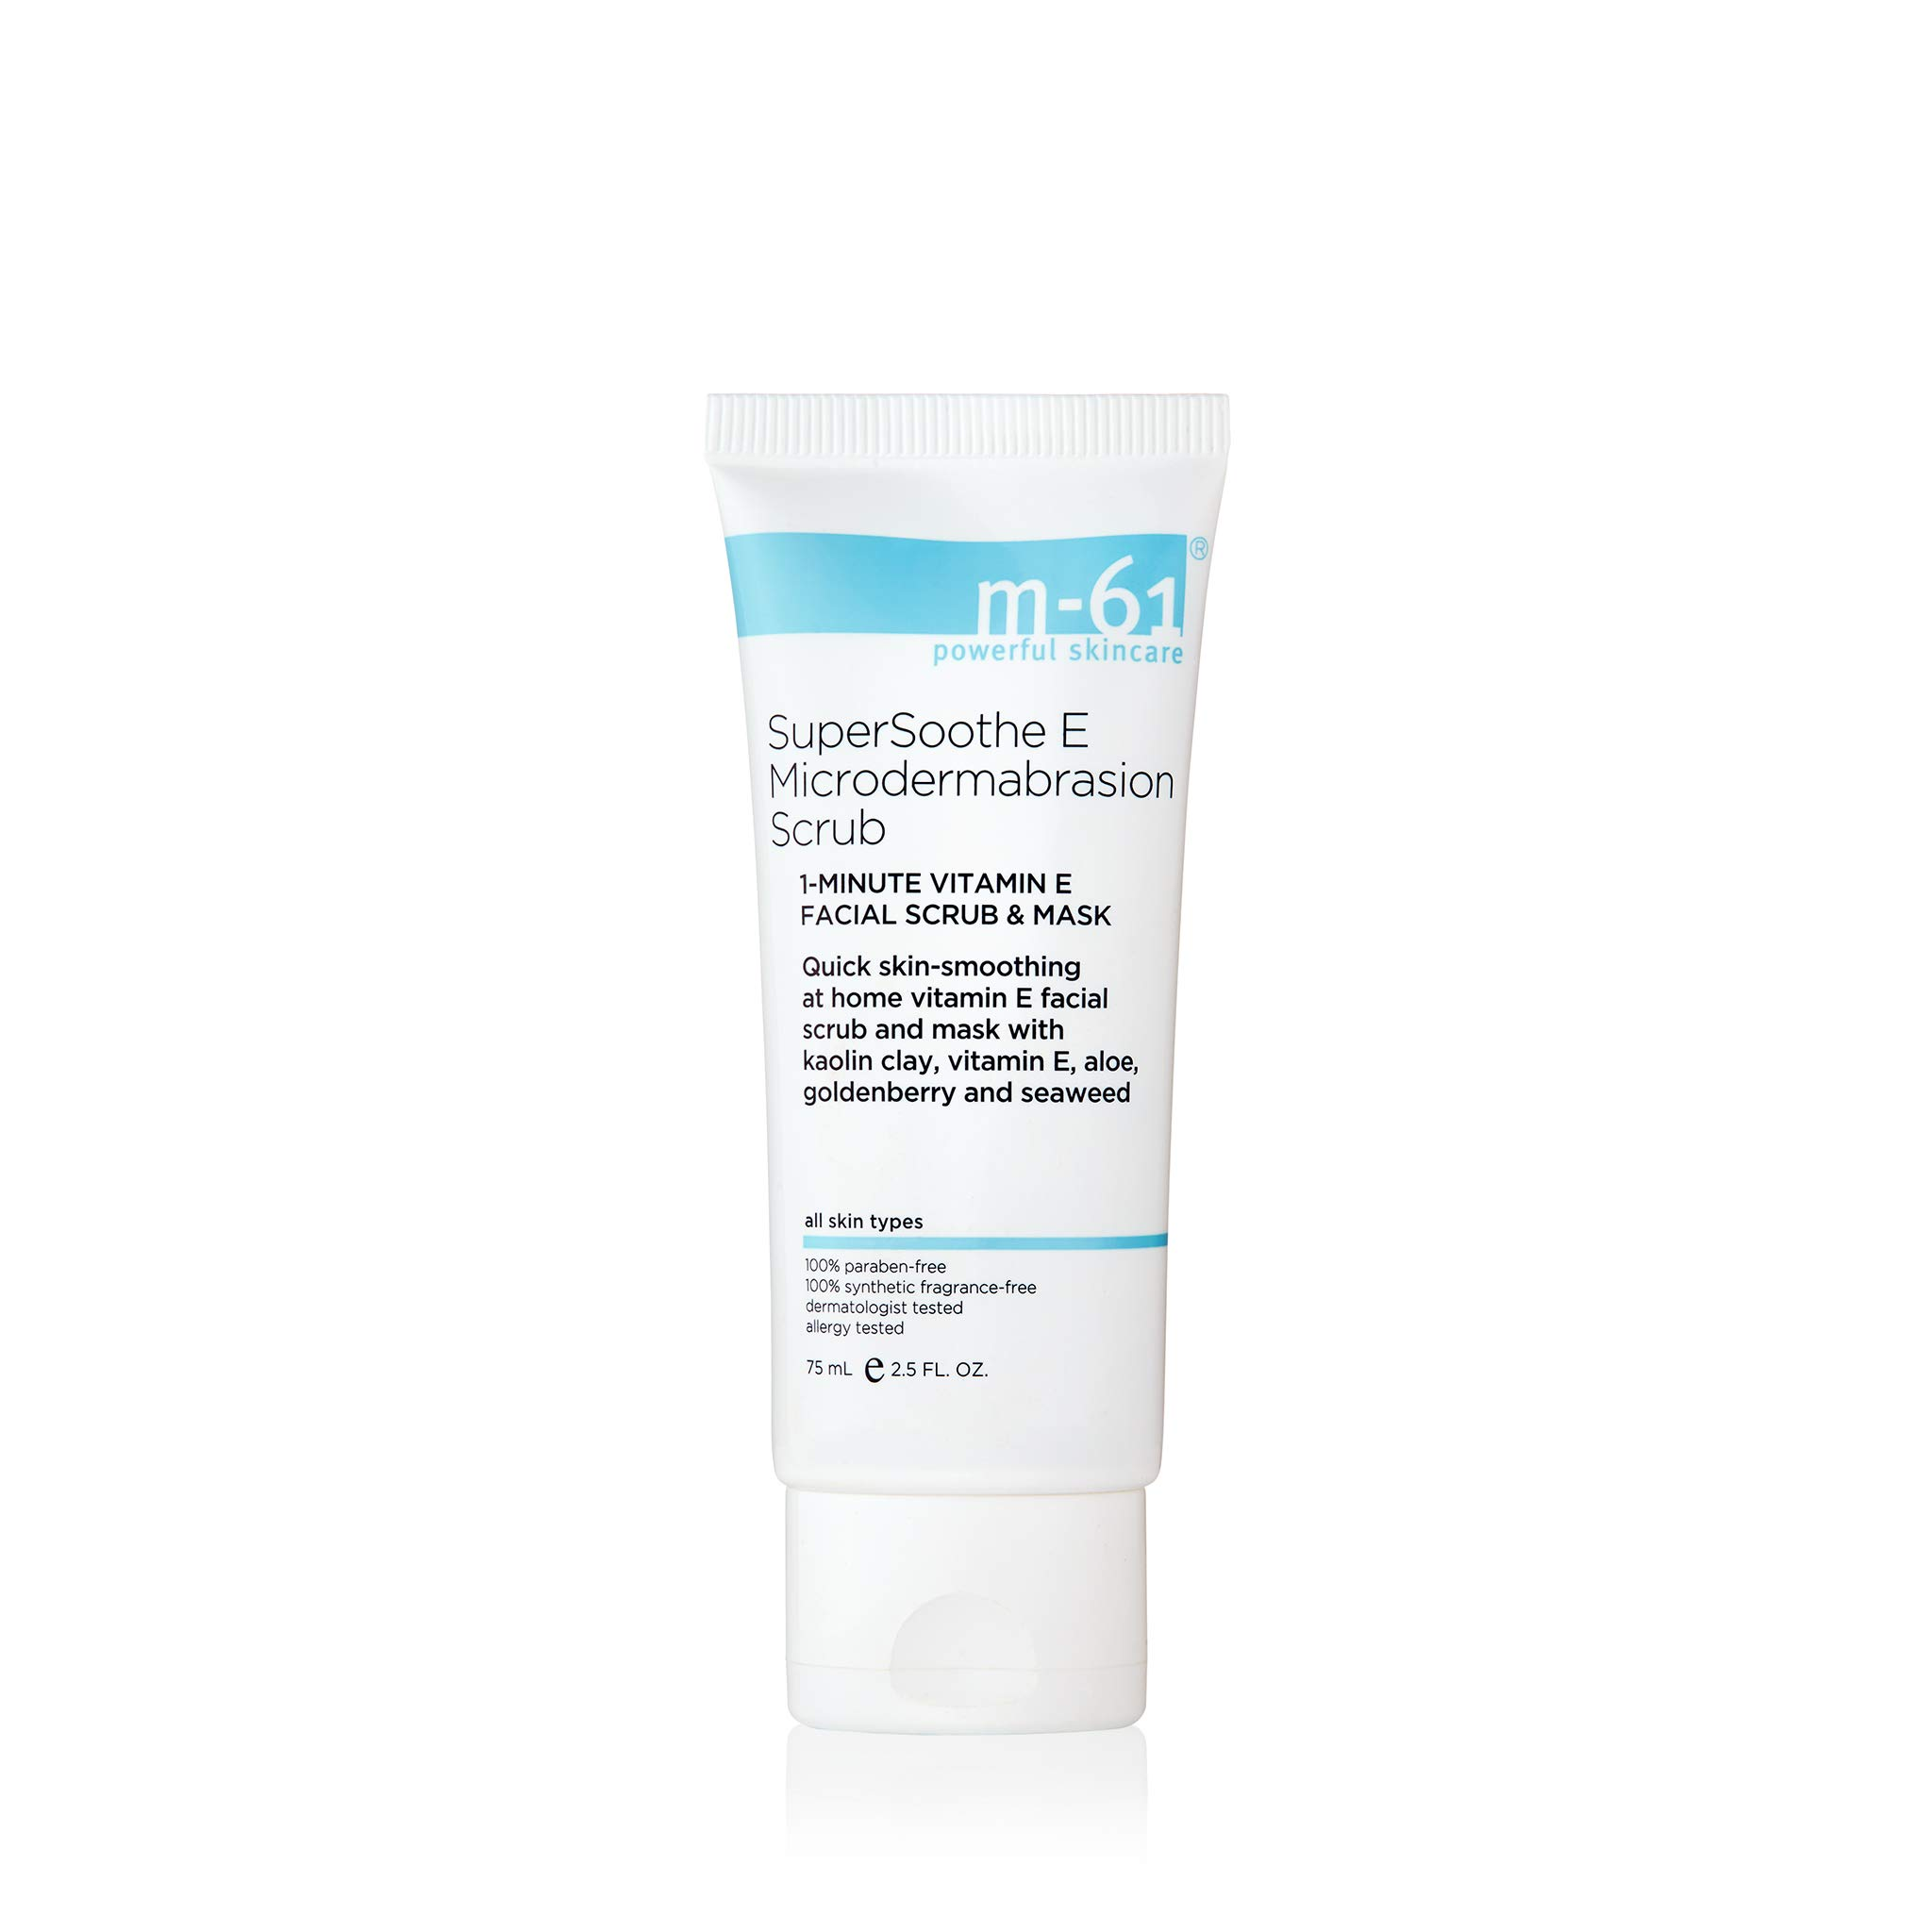 M-61 SuperSoothe E Microdermabrasion Scrub by M-61